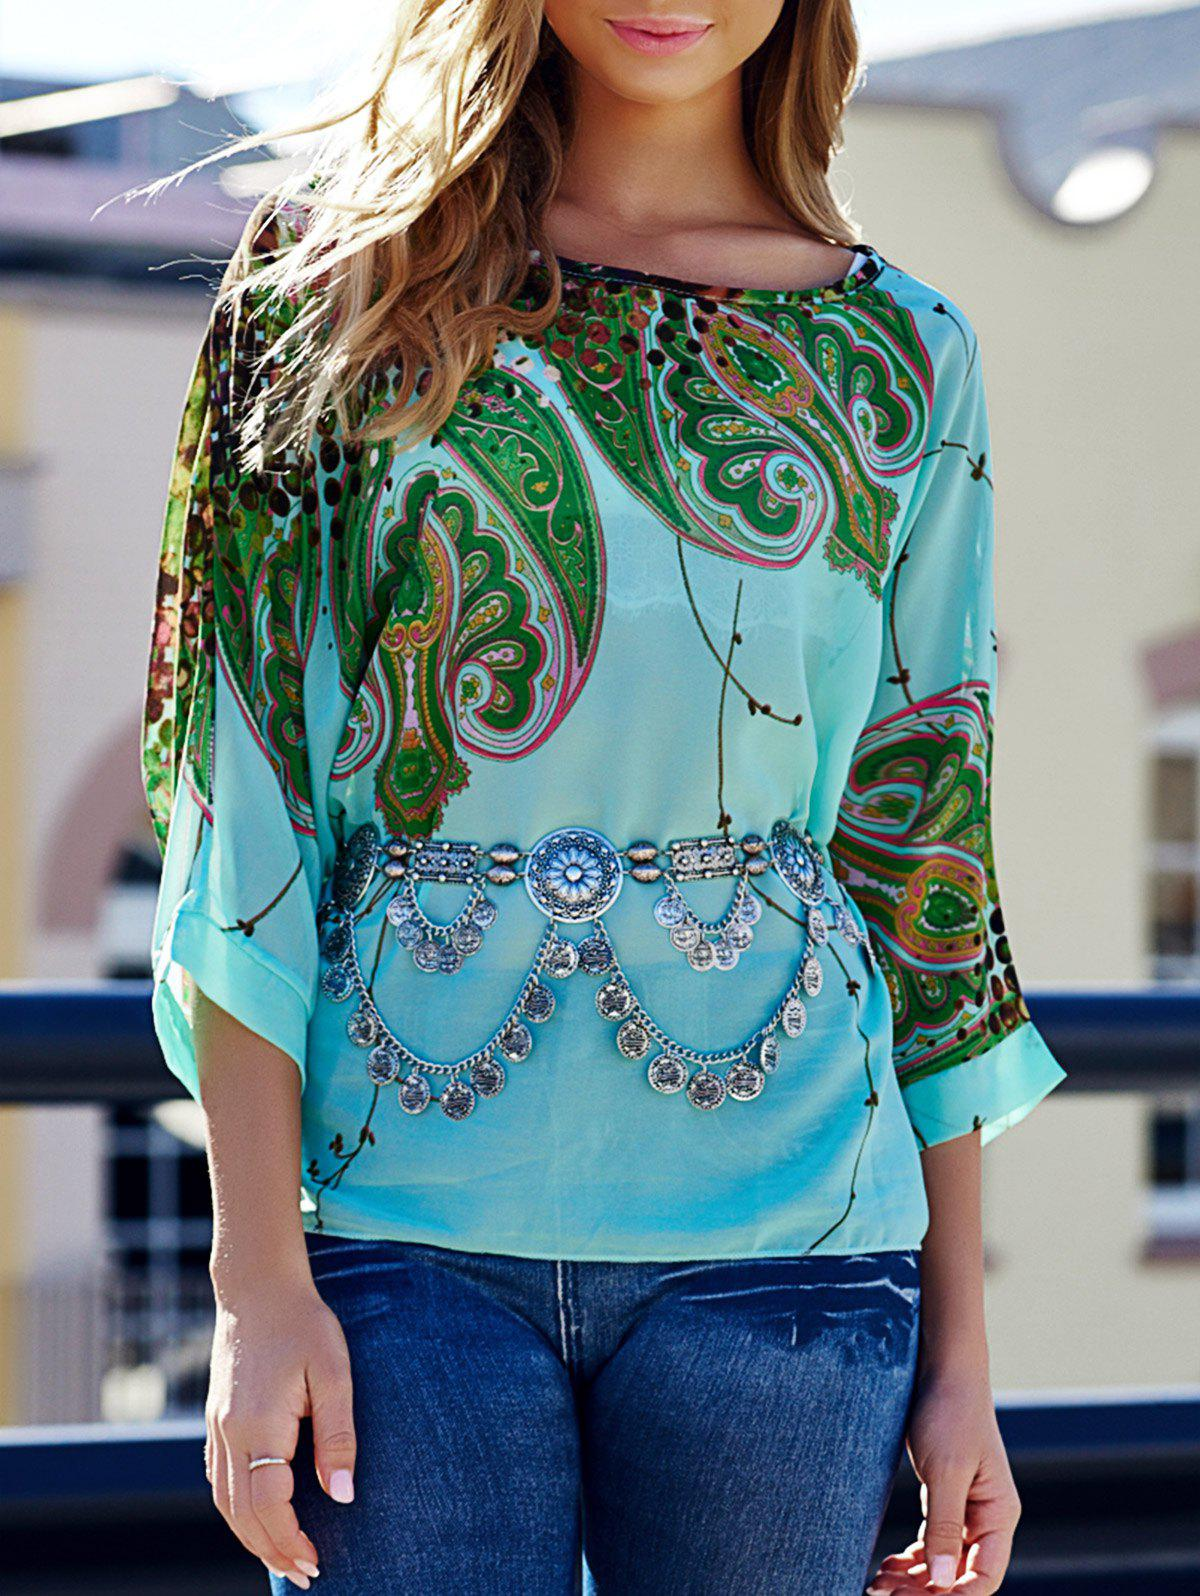 Scoop Neck Batwing Sleeve Printed Loose-Fitting Blouse For Women